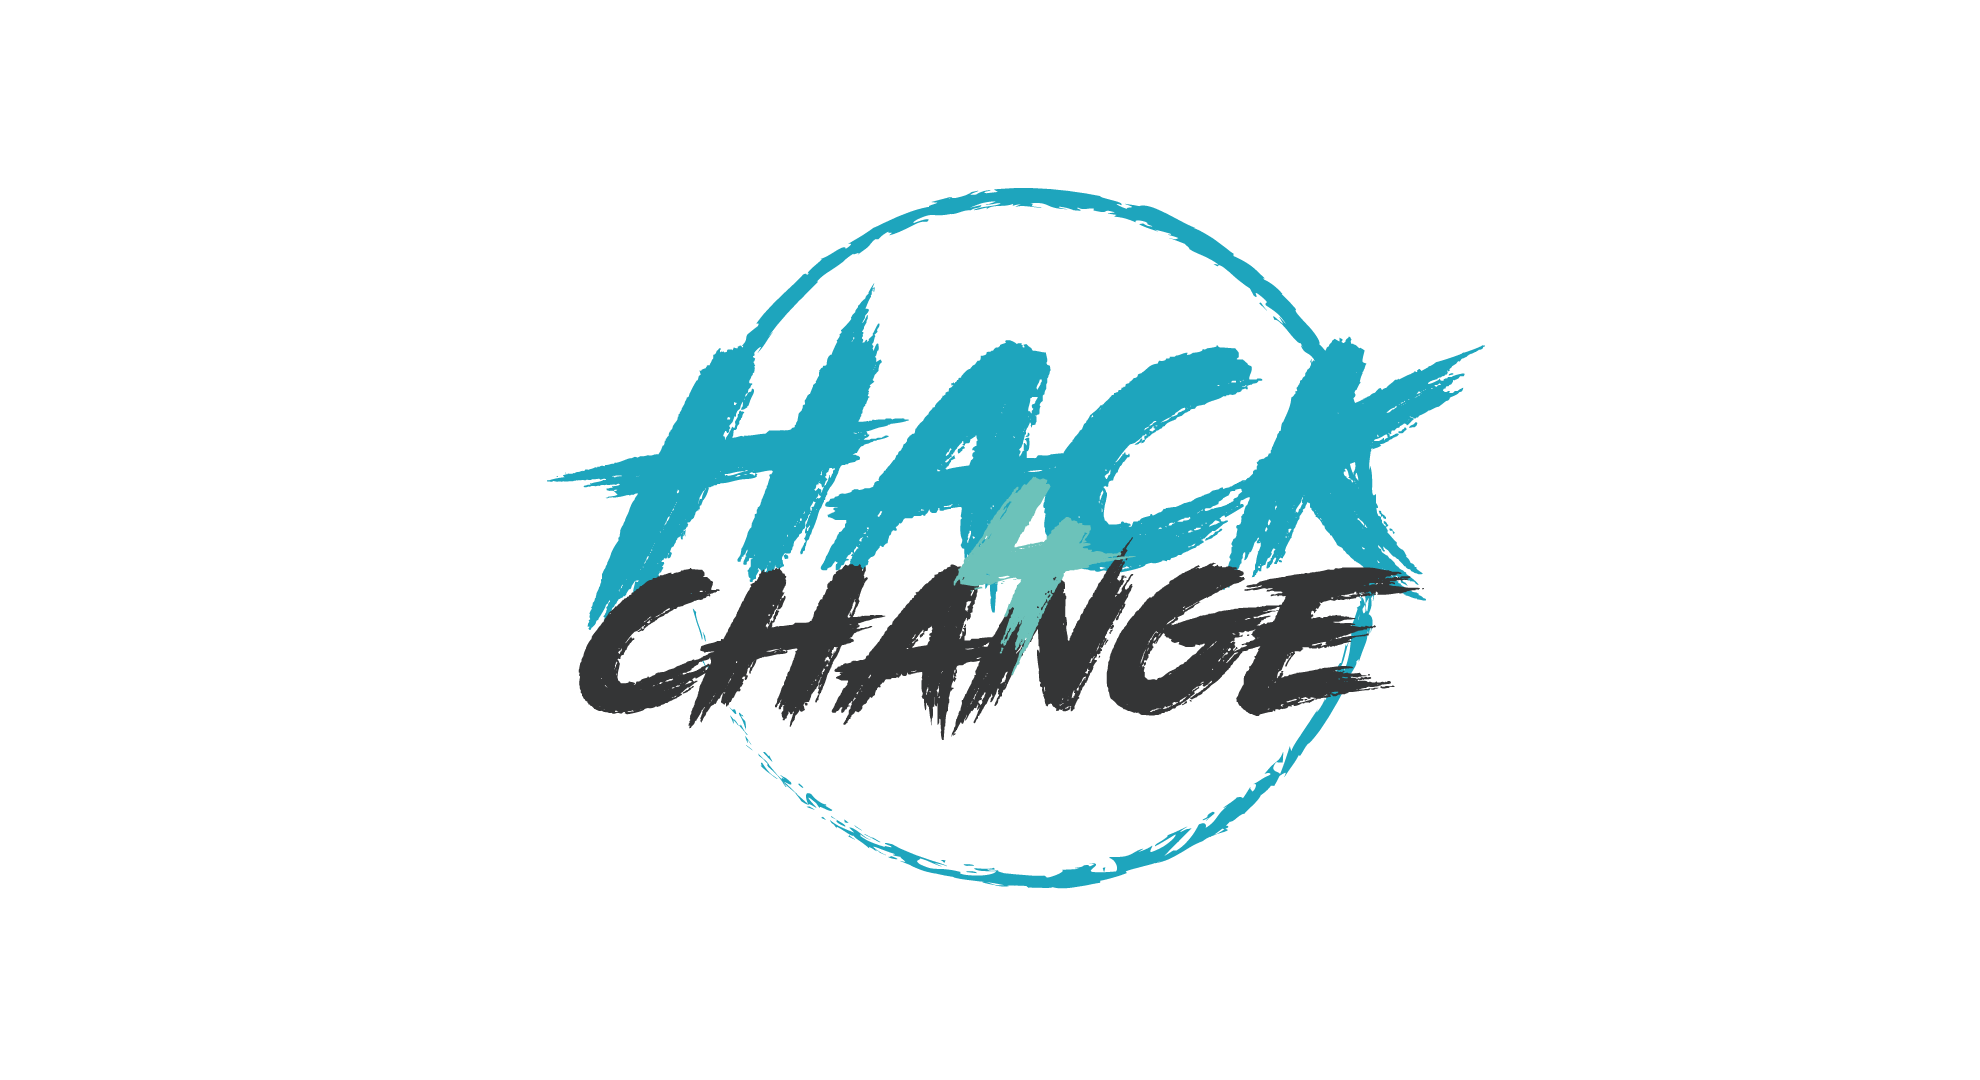 Hack4Change: Ajudando a Sua Empresa por Meio do Growth Hacking! - Desenvolva sua estratégia digital por meio do growth hacking e da ajuda do especialista de marketing da equipe do Gary Vaynerchuk.